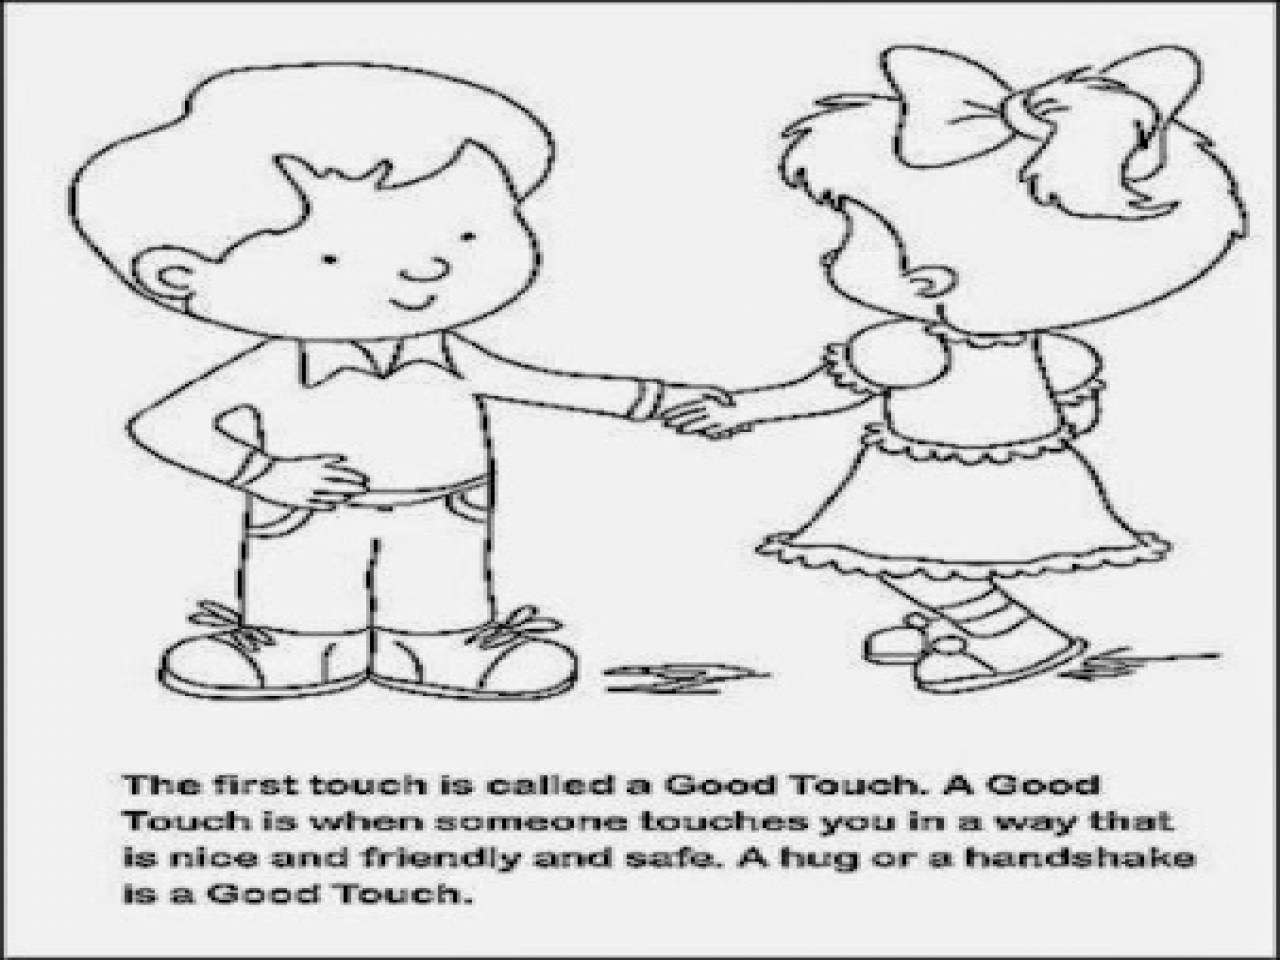 Awesome Good Touch Bad Touch Coloring Book Images - Printable - Free Printable Good Touch Bad Touch Coloring Book